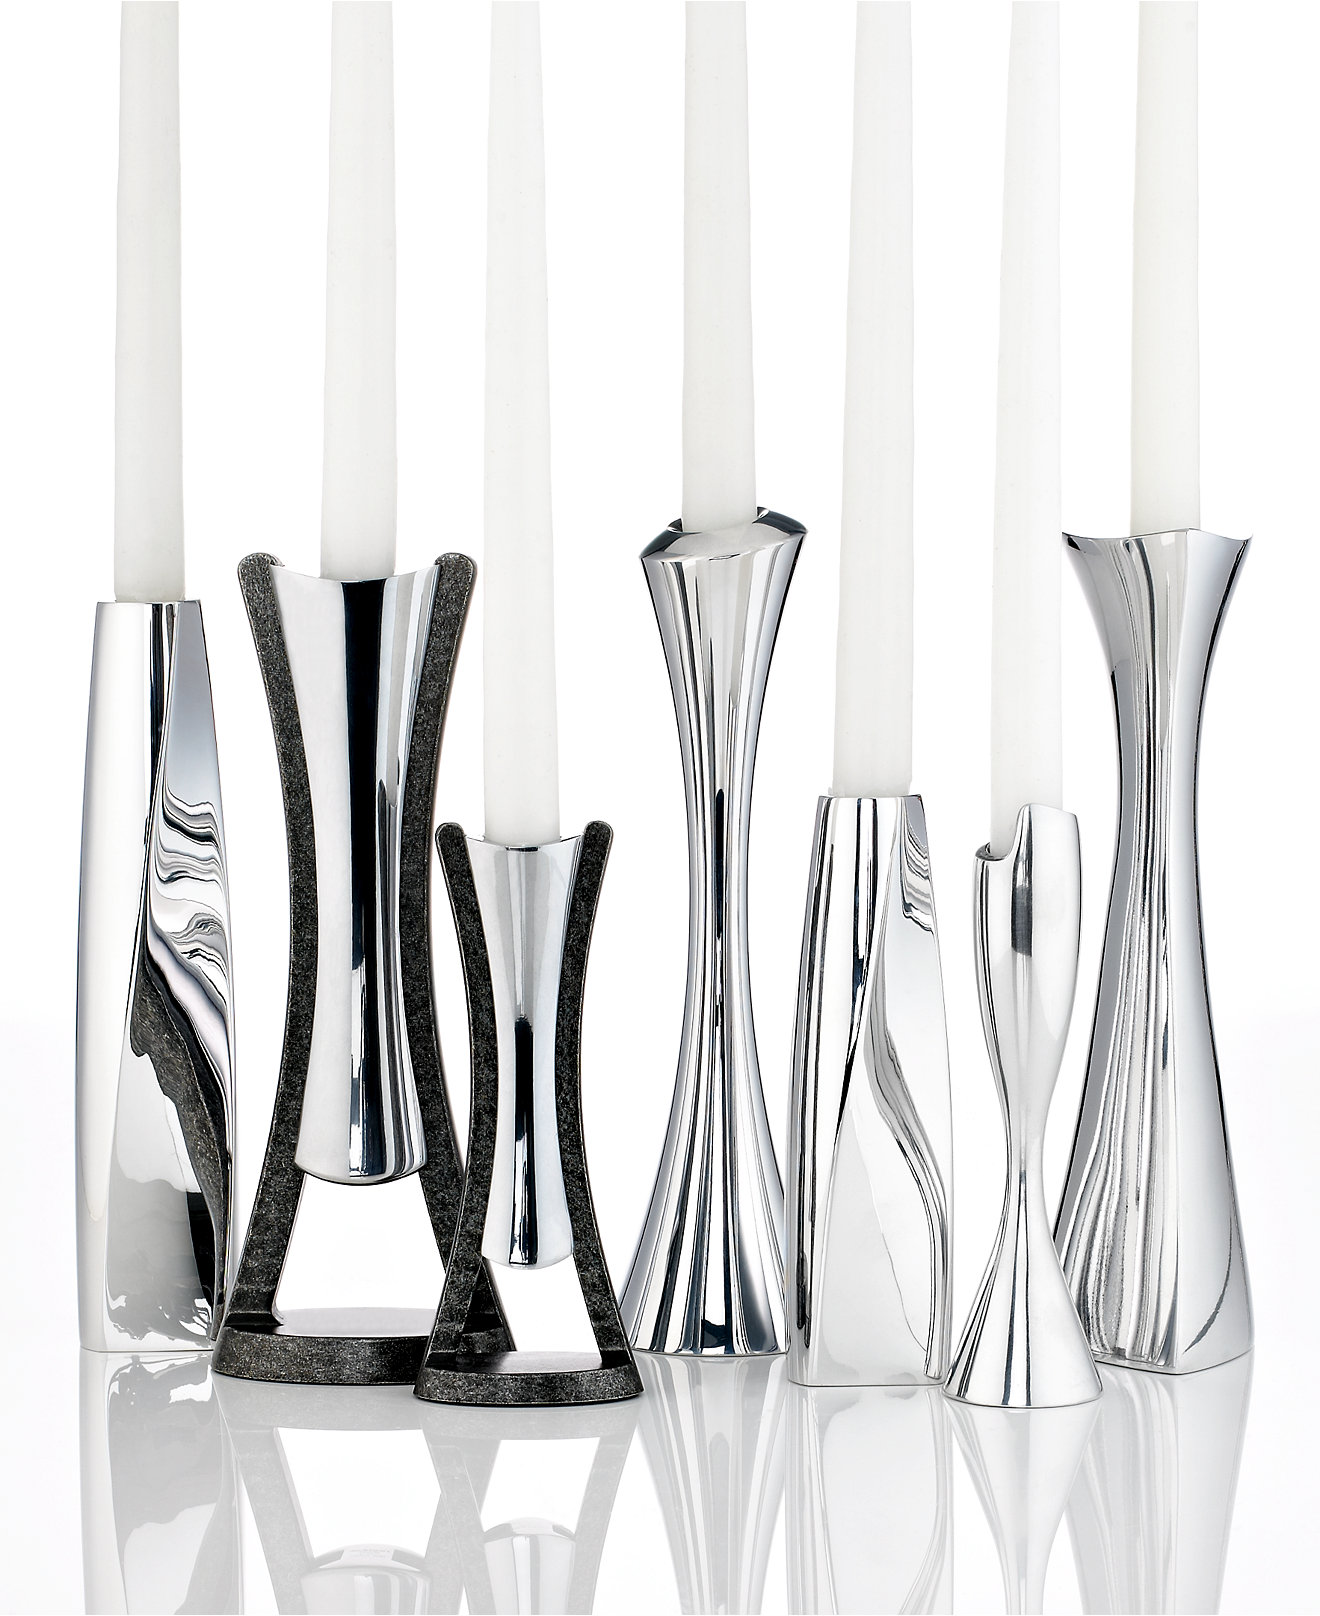 candlesticks  macy's - nambe candlestick collection